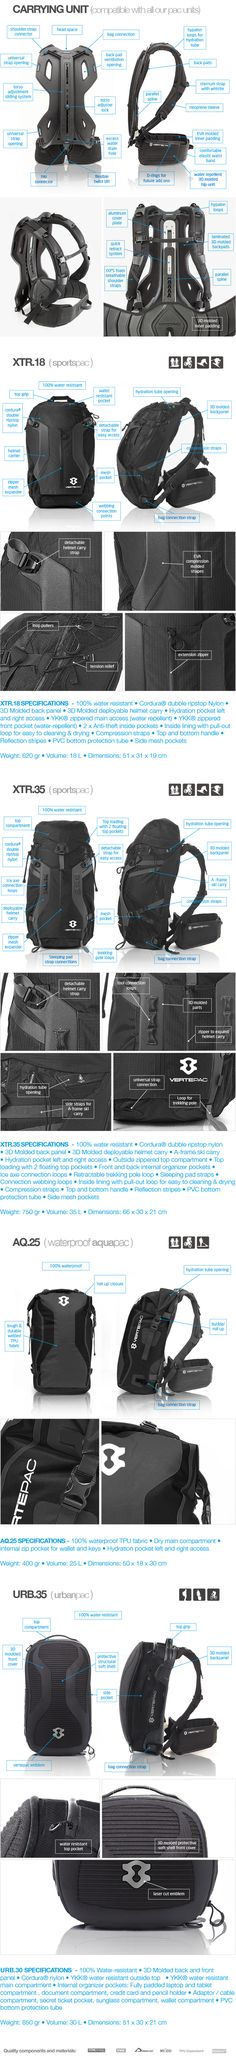 VERTEPAC is raising funds for VERTEPAC: World's First Backpack With Its Own Spine. Revolutionary daypack that mimics the mechanics of your body. To accomplish your ultimate performance! Survival Gear, Survival Skills, Survival Gadgets, Survival Hacks, Survival Equipment, Camping Survival, Camping Equipment, Camping Gear, Backpacking